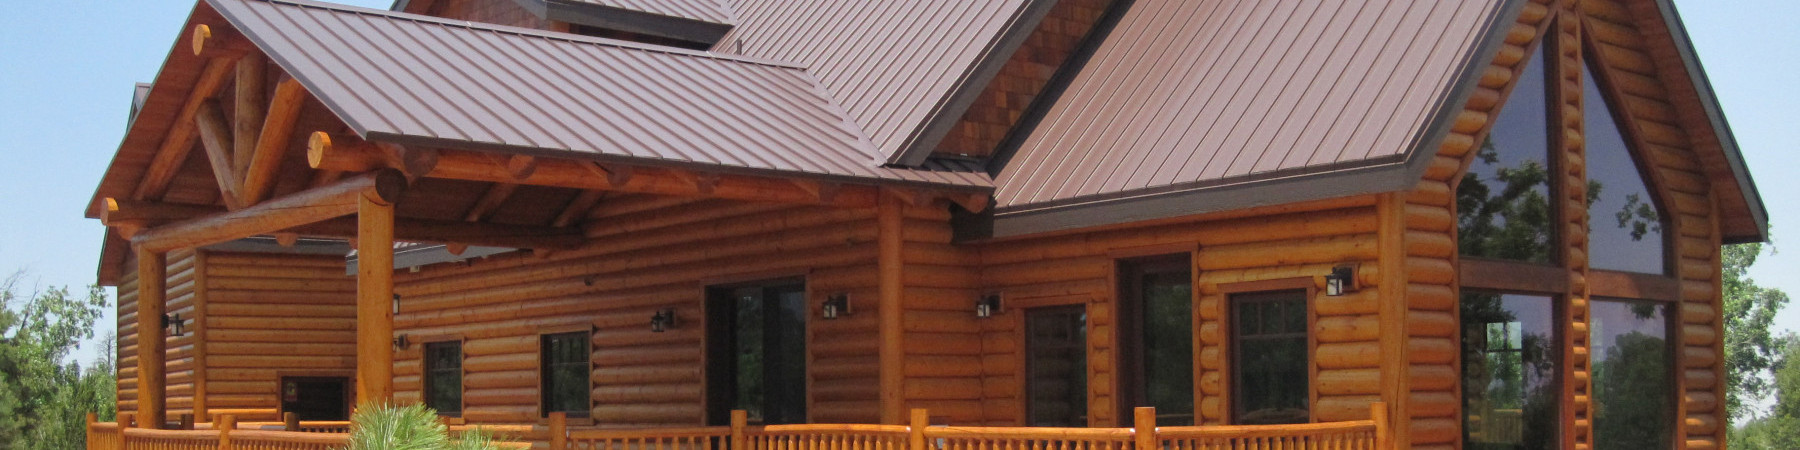 Fiber Cement Siding What You Need To Know Timberline